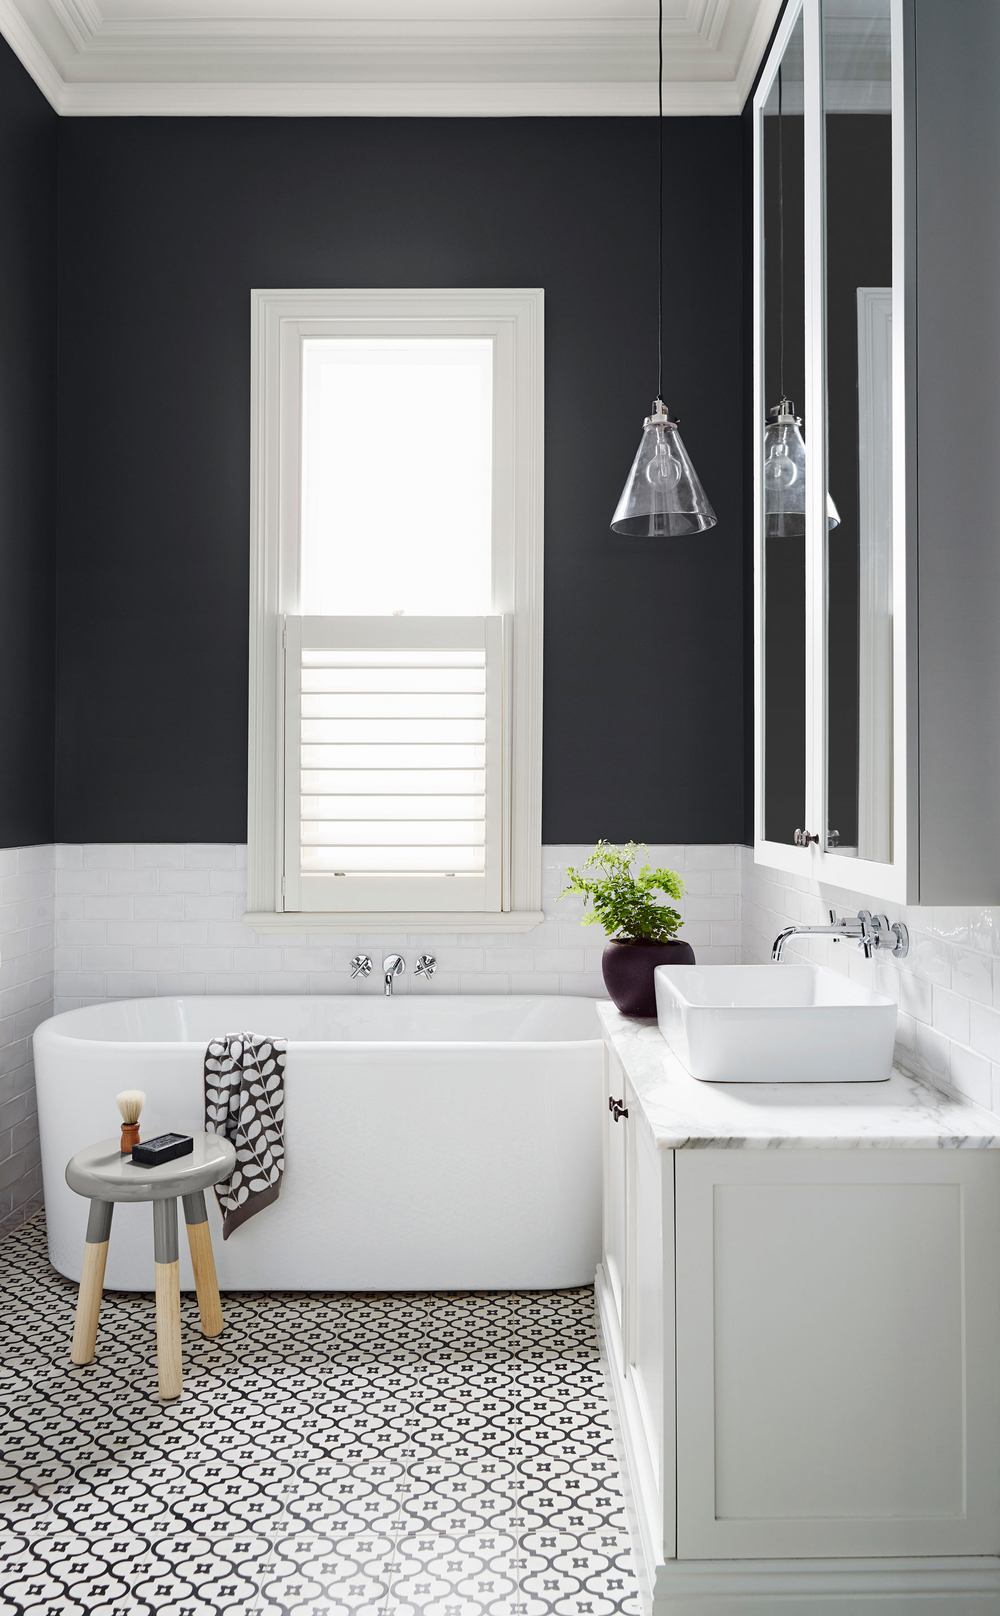 DULUXDULUX-WilliamstownBathroom.jpg